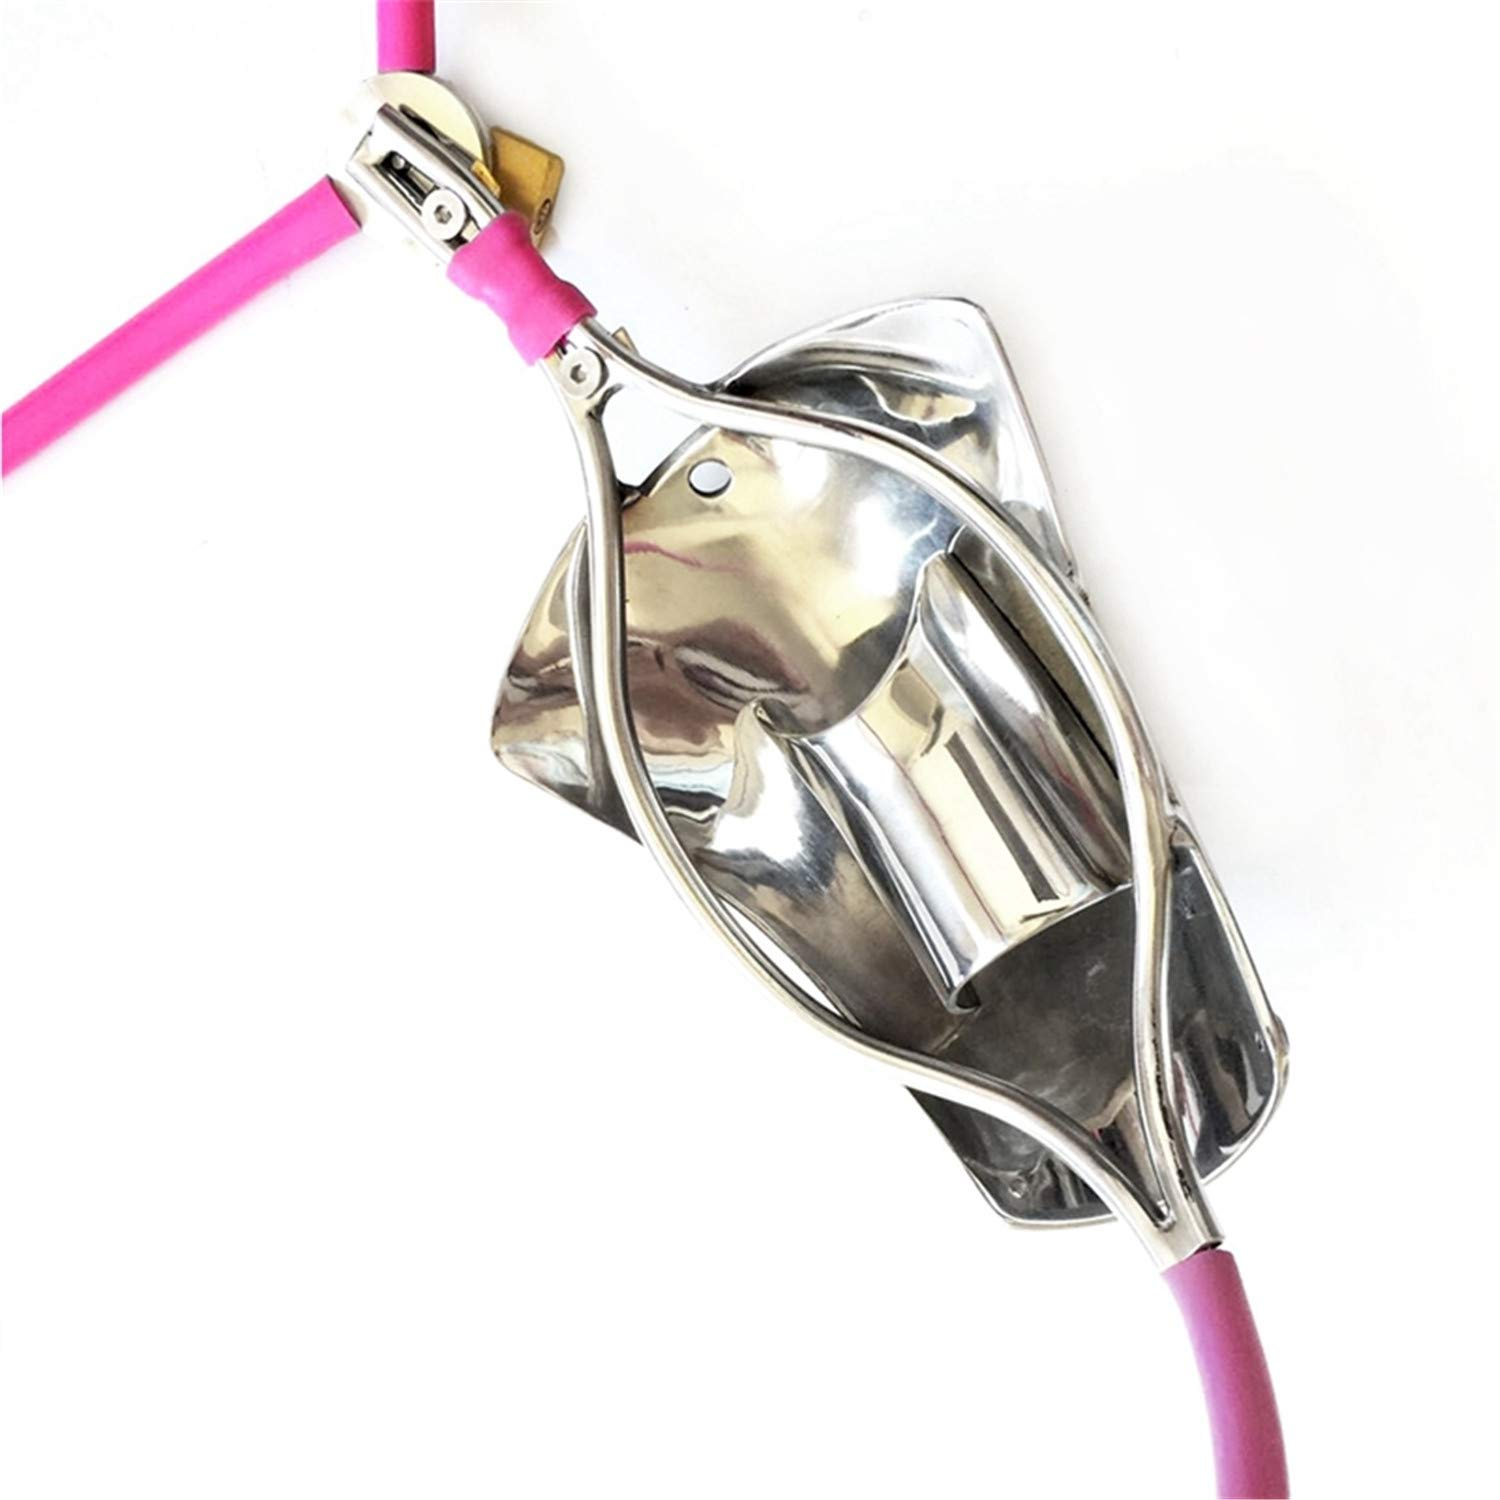 Cathet-er Sound Fully Adjustable Chastity Jeff Tribble Belt Stealth Male Stainless Steel Lock Cage Chastity Cages Adult Game Restraint Device by Jeff Tribble (Image #4)